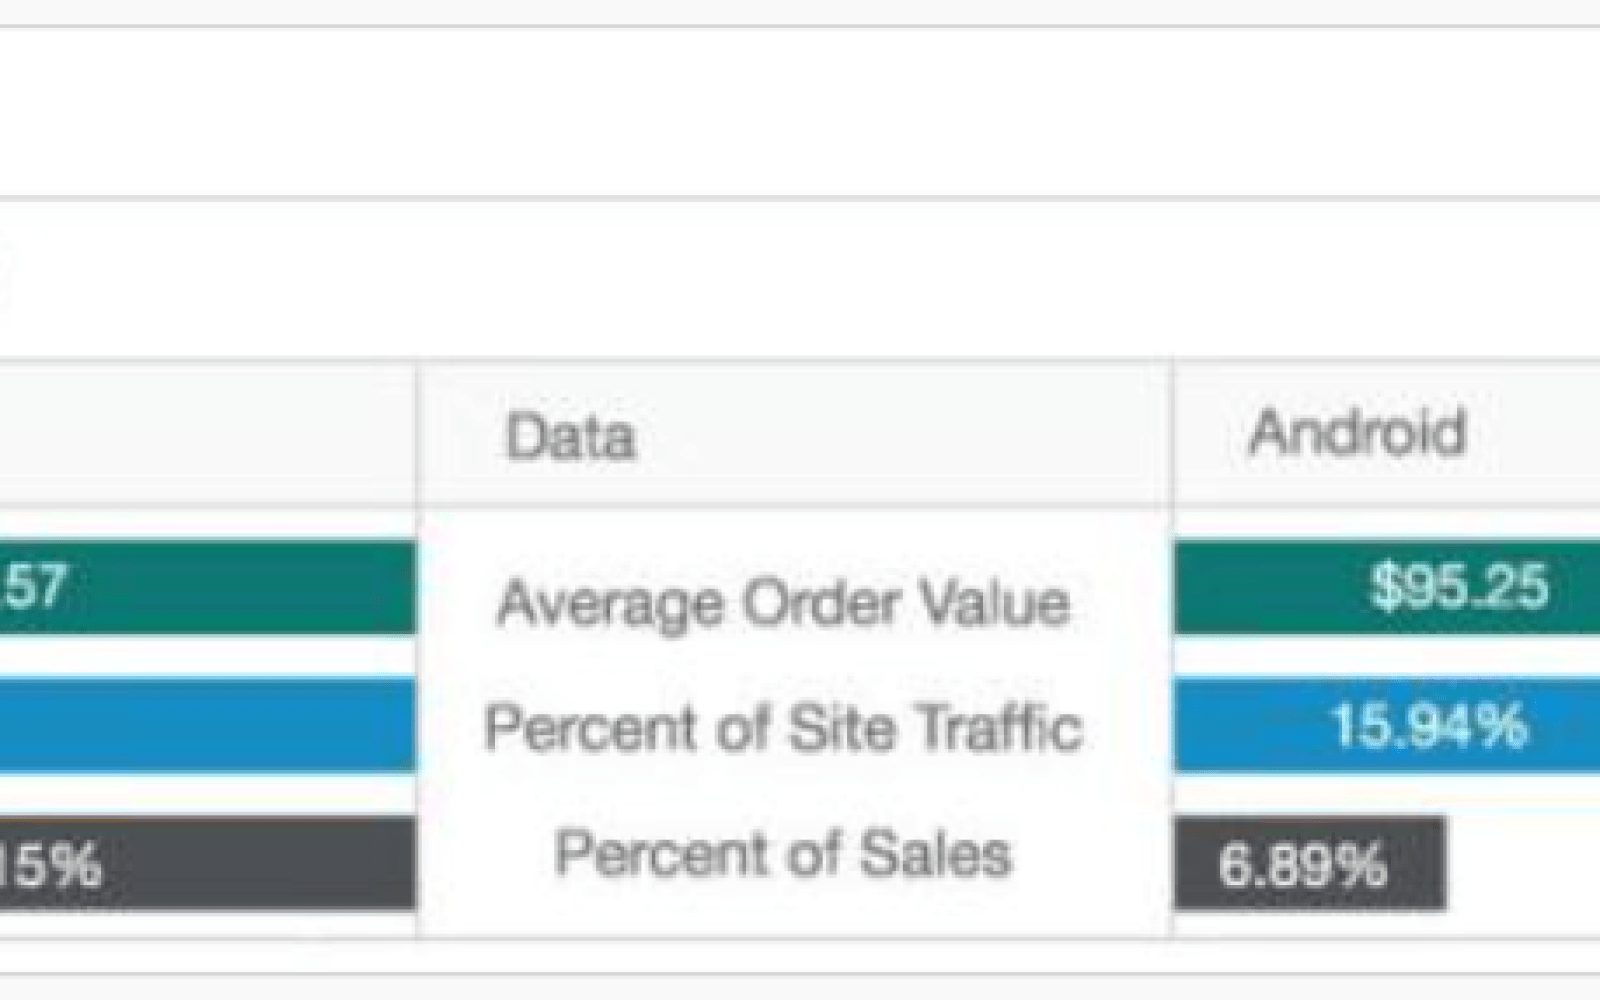 IBM analytics show that iOS dominates online purchasing in both transactions and average sale values